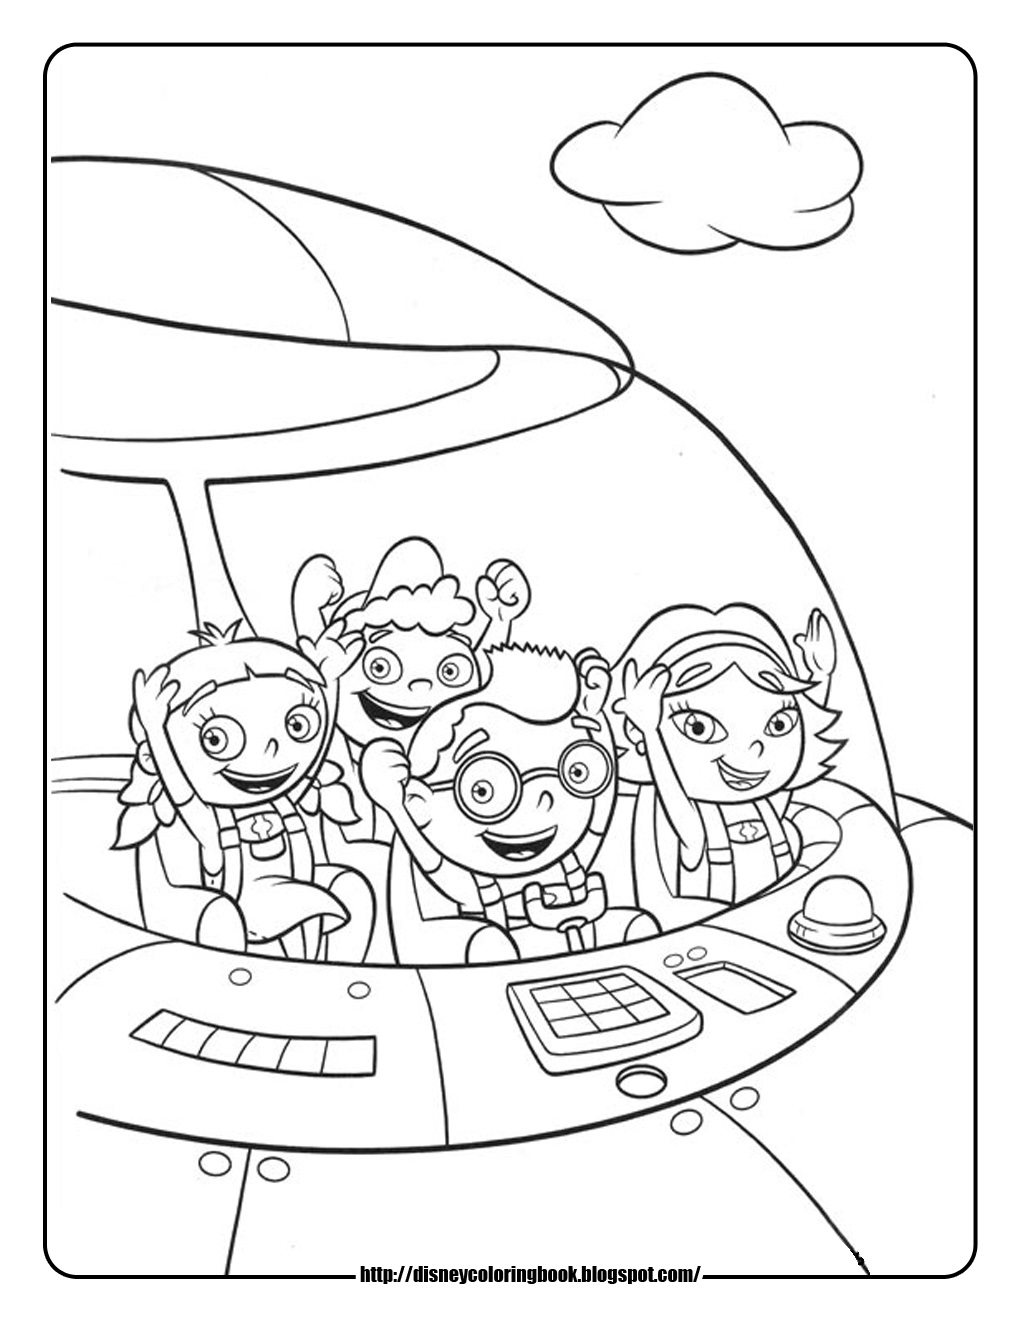 little einsteins online coloring pages - photo #6